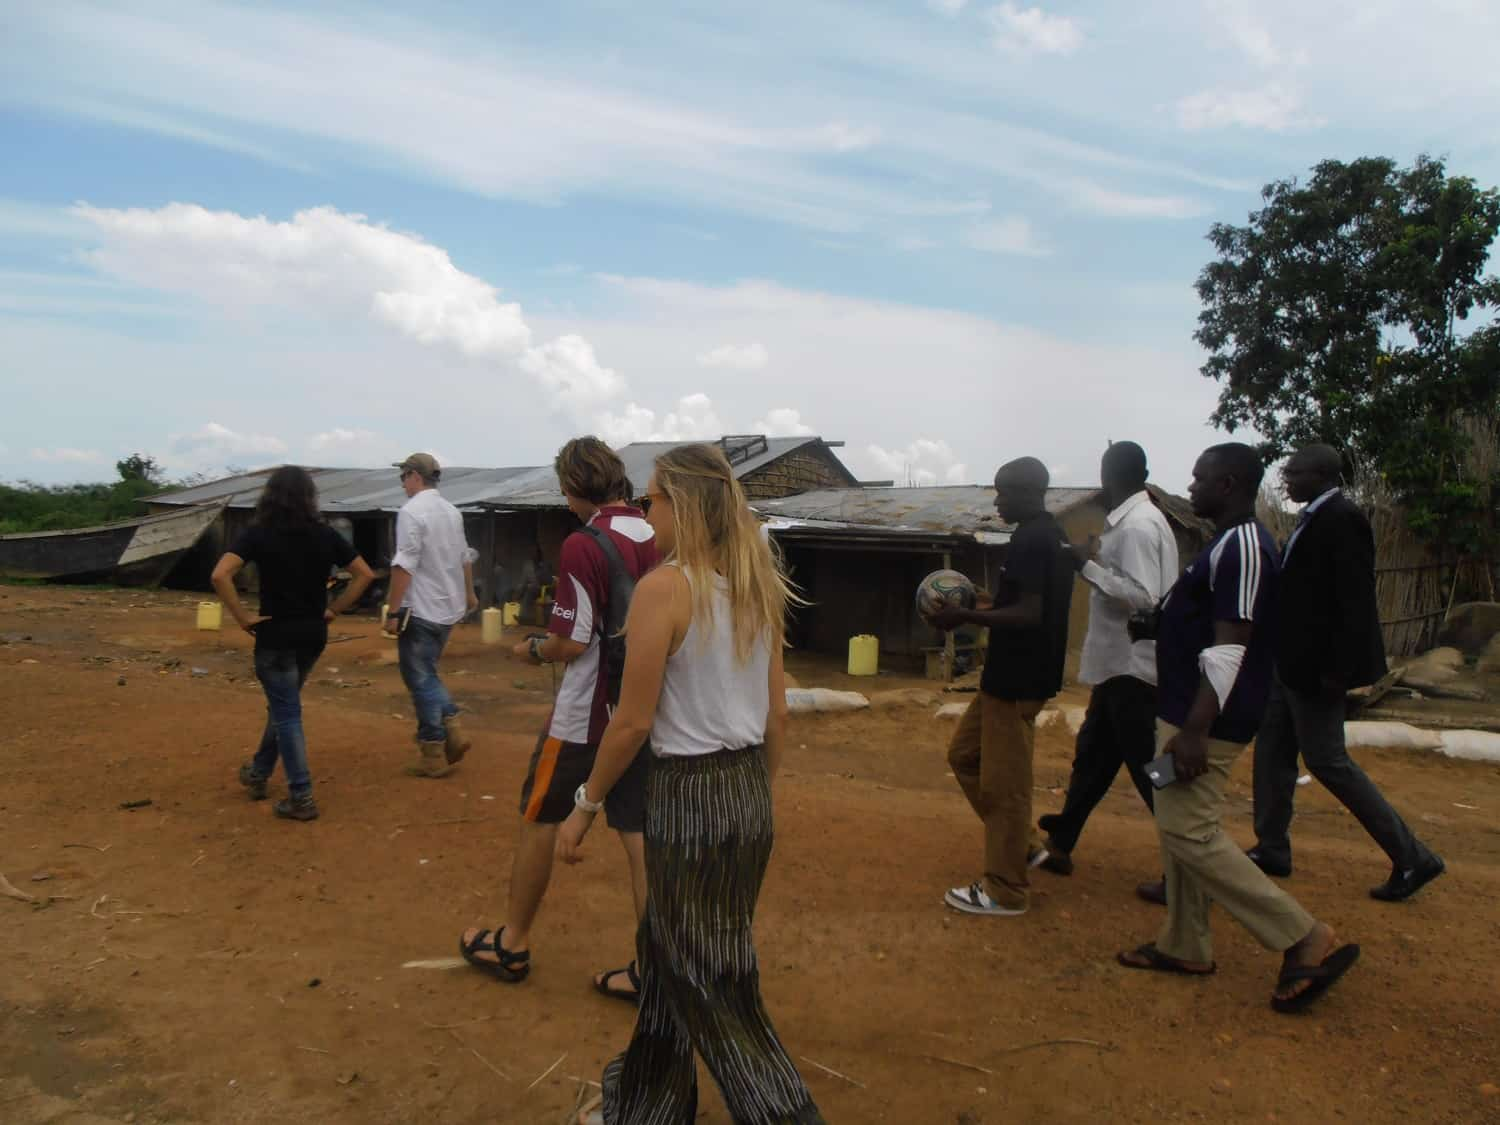 Our experience with Go Volunteer Africa was excellent and rewarding